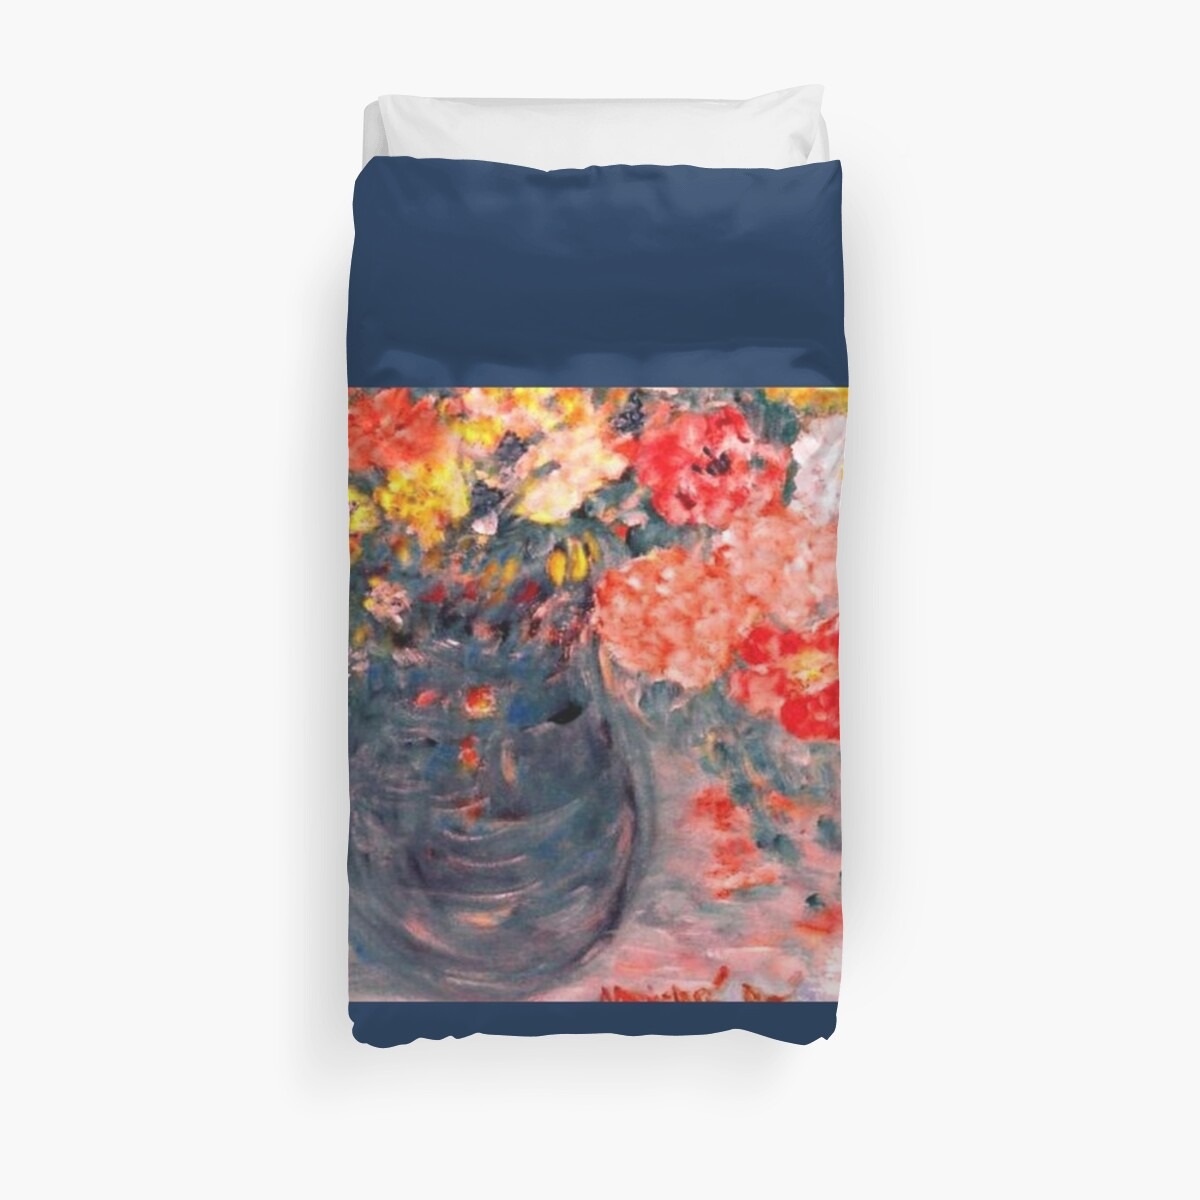 Quot Flowers In Slate Vase Home Decor Amp Gifts Quot Duvet Covers By